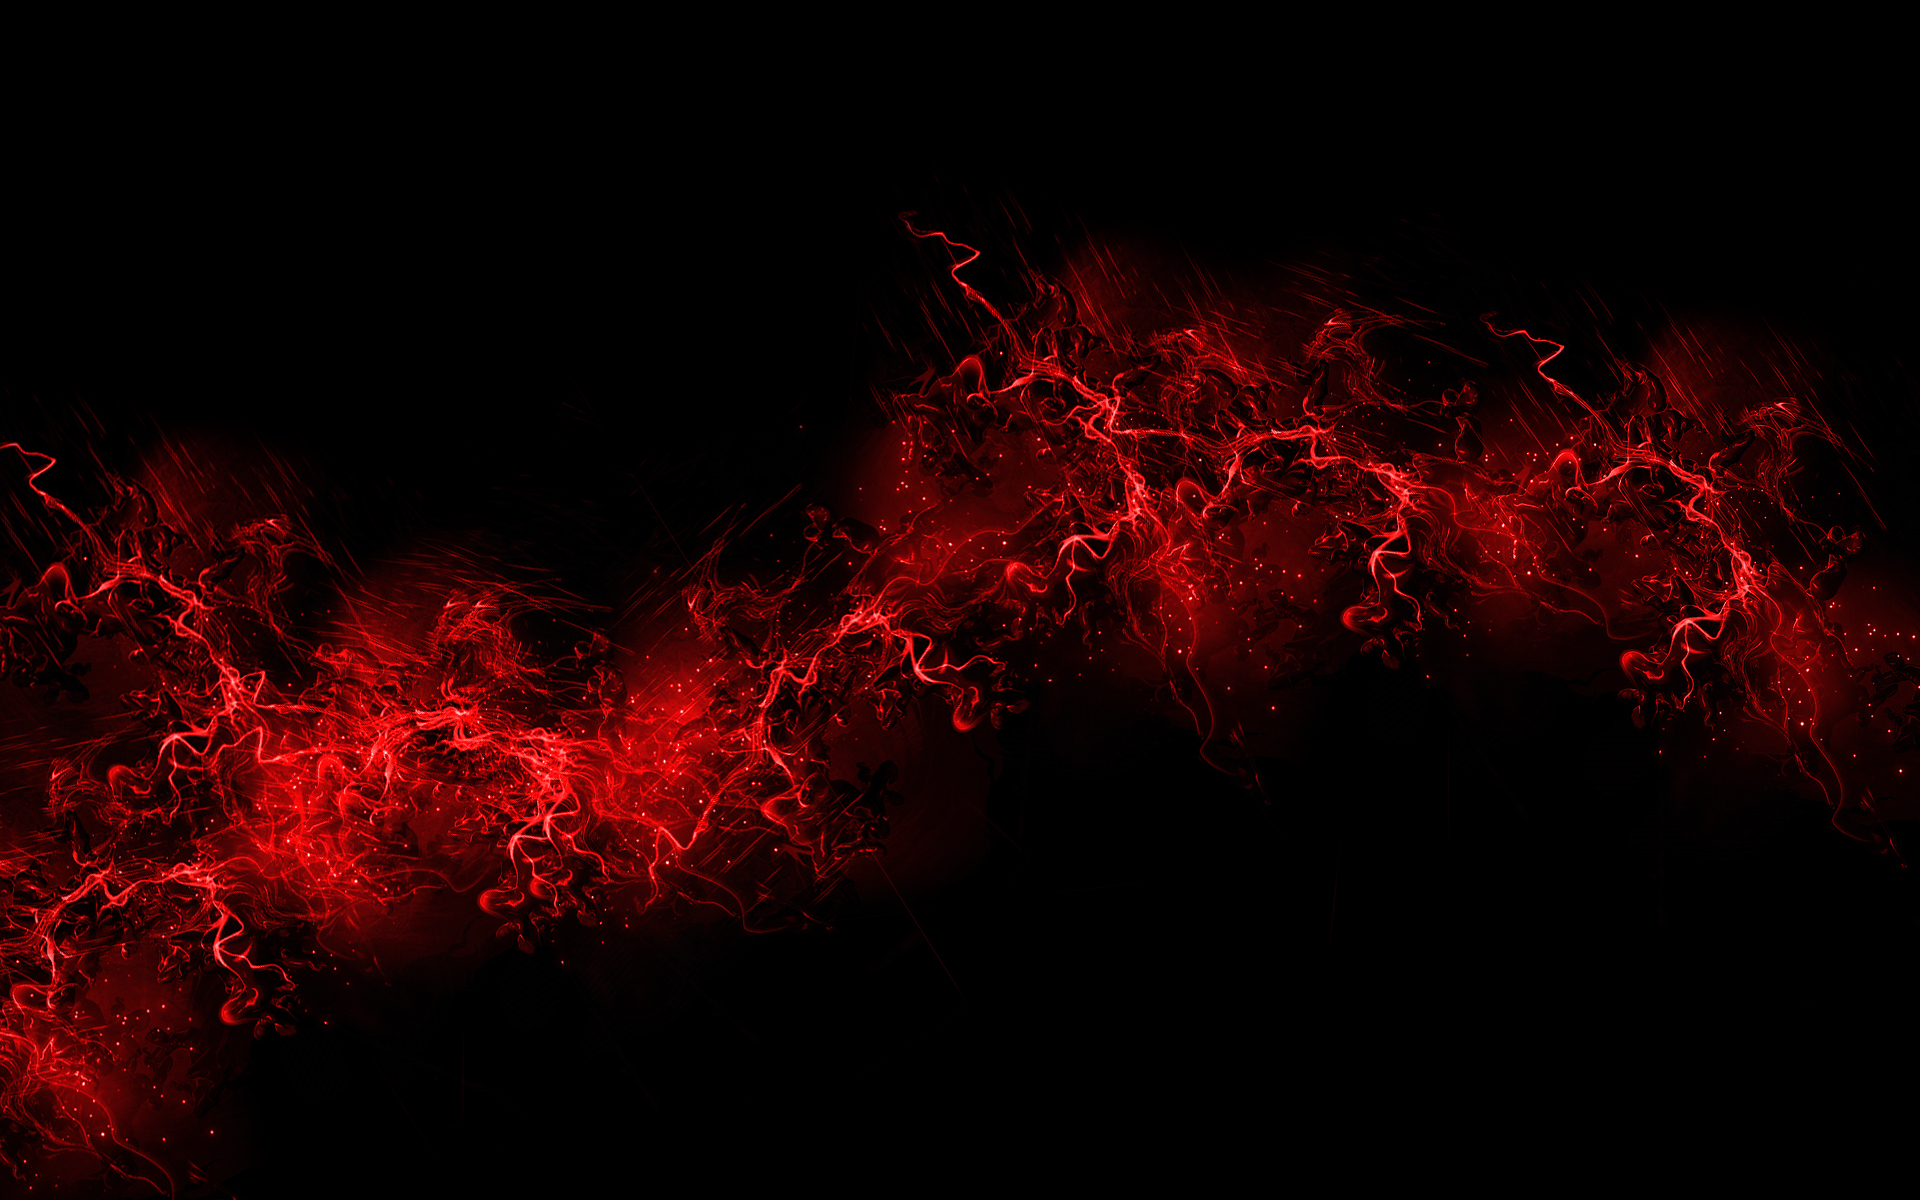 Cool white and red background - Wallpaper Black Background Red Color Paint Explosion Burst Red Free